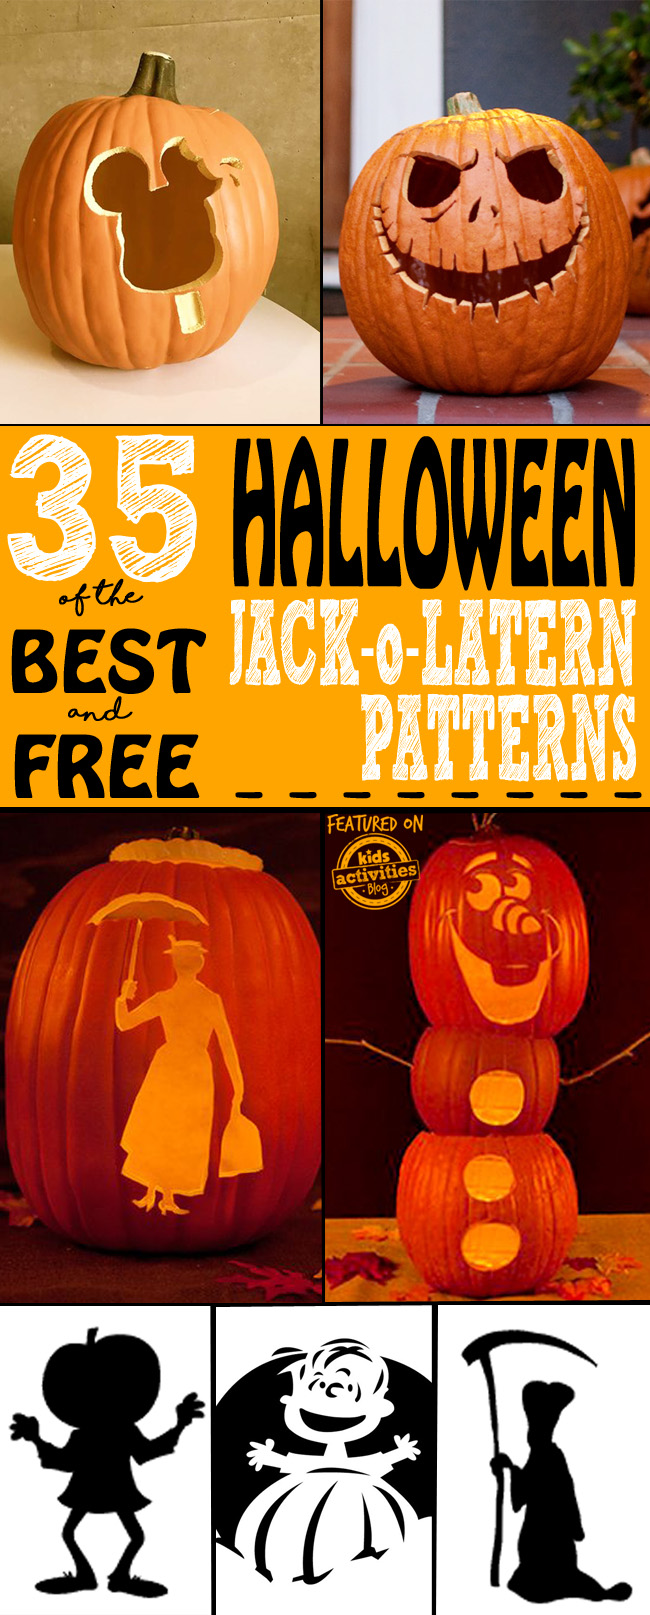 jack o latern patterns